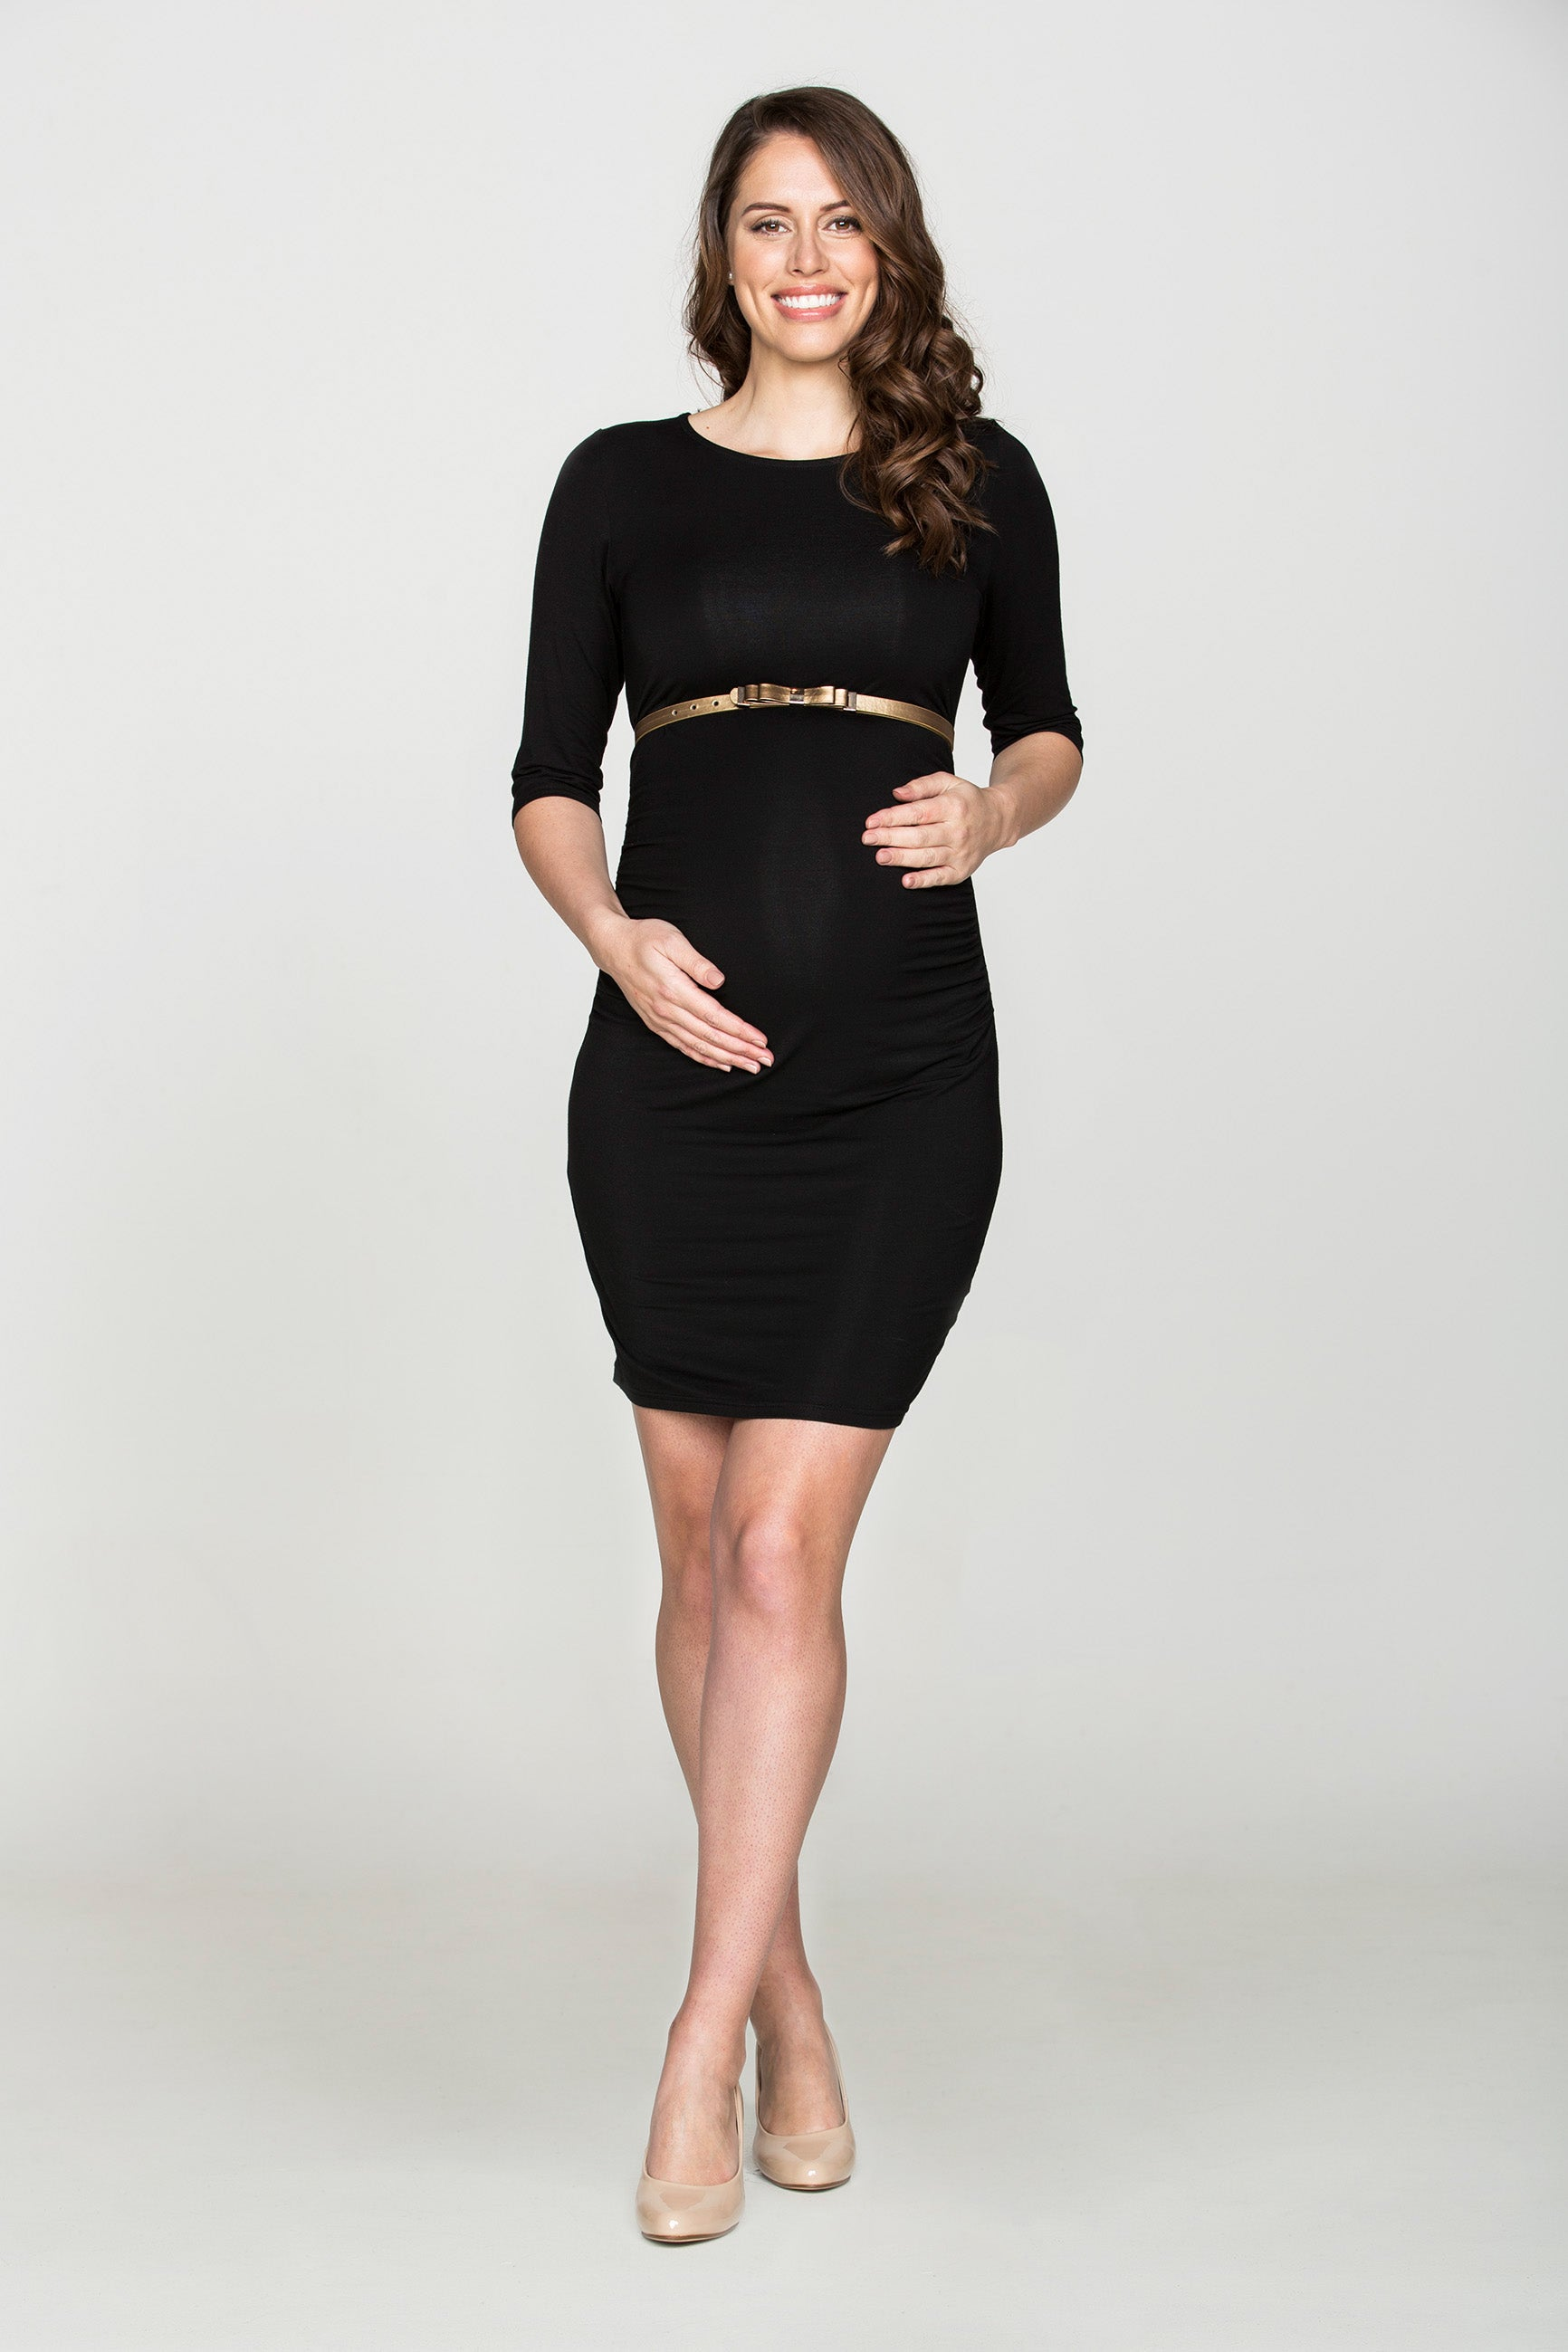 Black Elegance Dress - Bubba Belly Maternity Wear